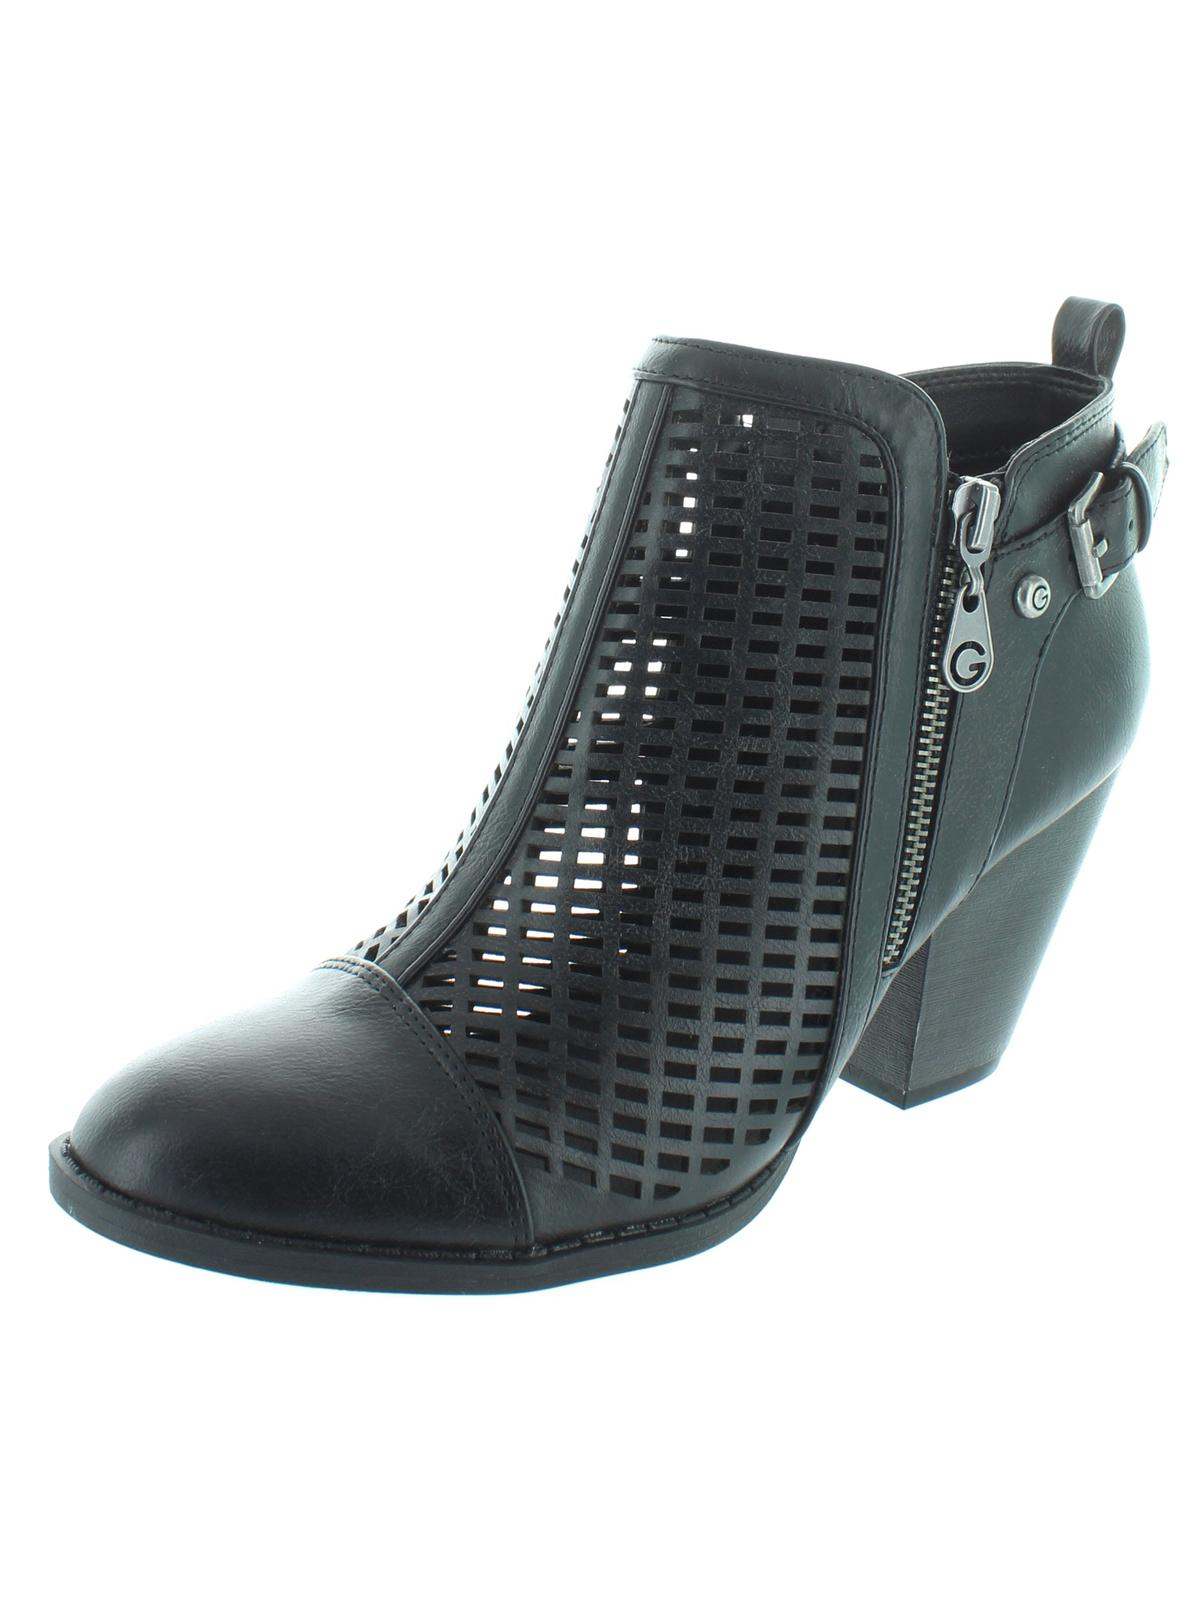 GUESS - Guess Womens Privvy Faux Leather Ankle Booties - Walmart.com 1606797ff46ba